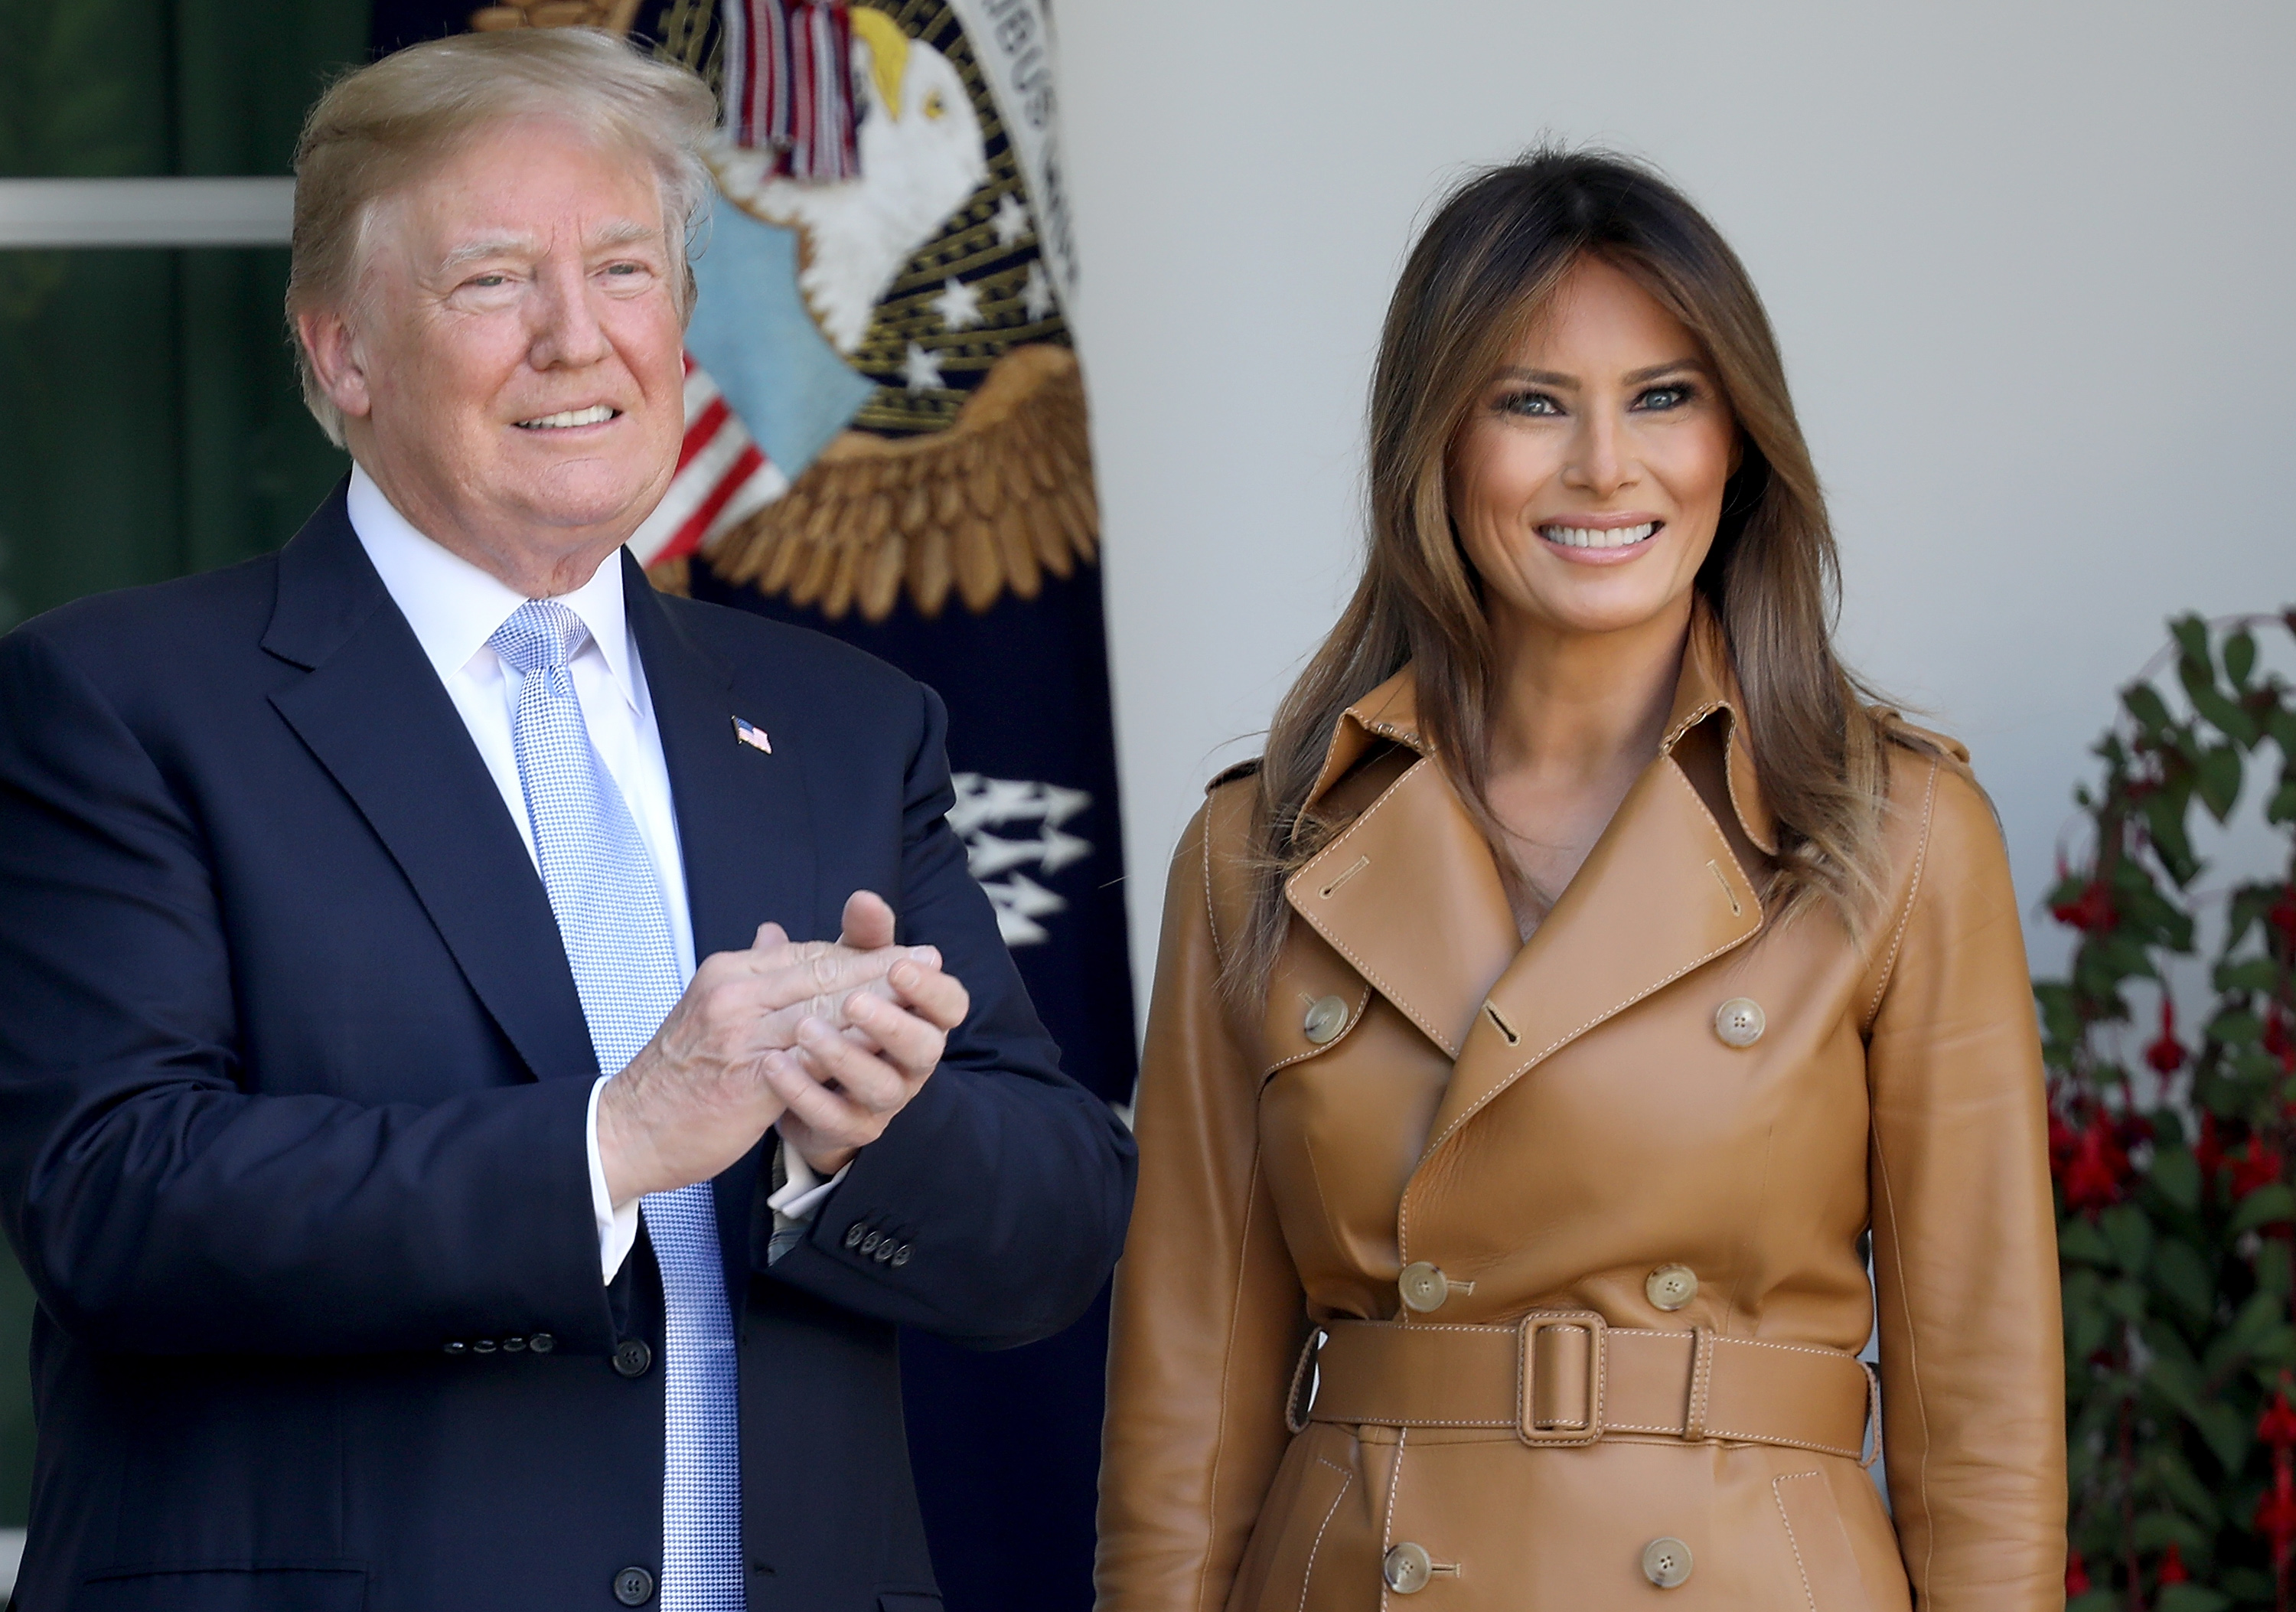 WASHINGTON, DC - MAY 07: U.S. President Donald Trump applauds after U.S. first lady Melania Trump spoke in the Rose Garden of the White House May 7, 2018 in Washington, DC. Melania Trump outlined her new initiatives, known as the Be Best program, during the event. (Photo by Win McNamee/Getty Images)